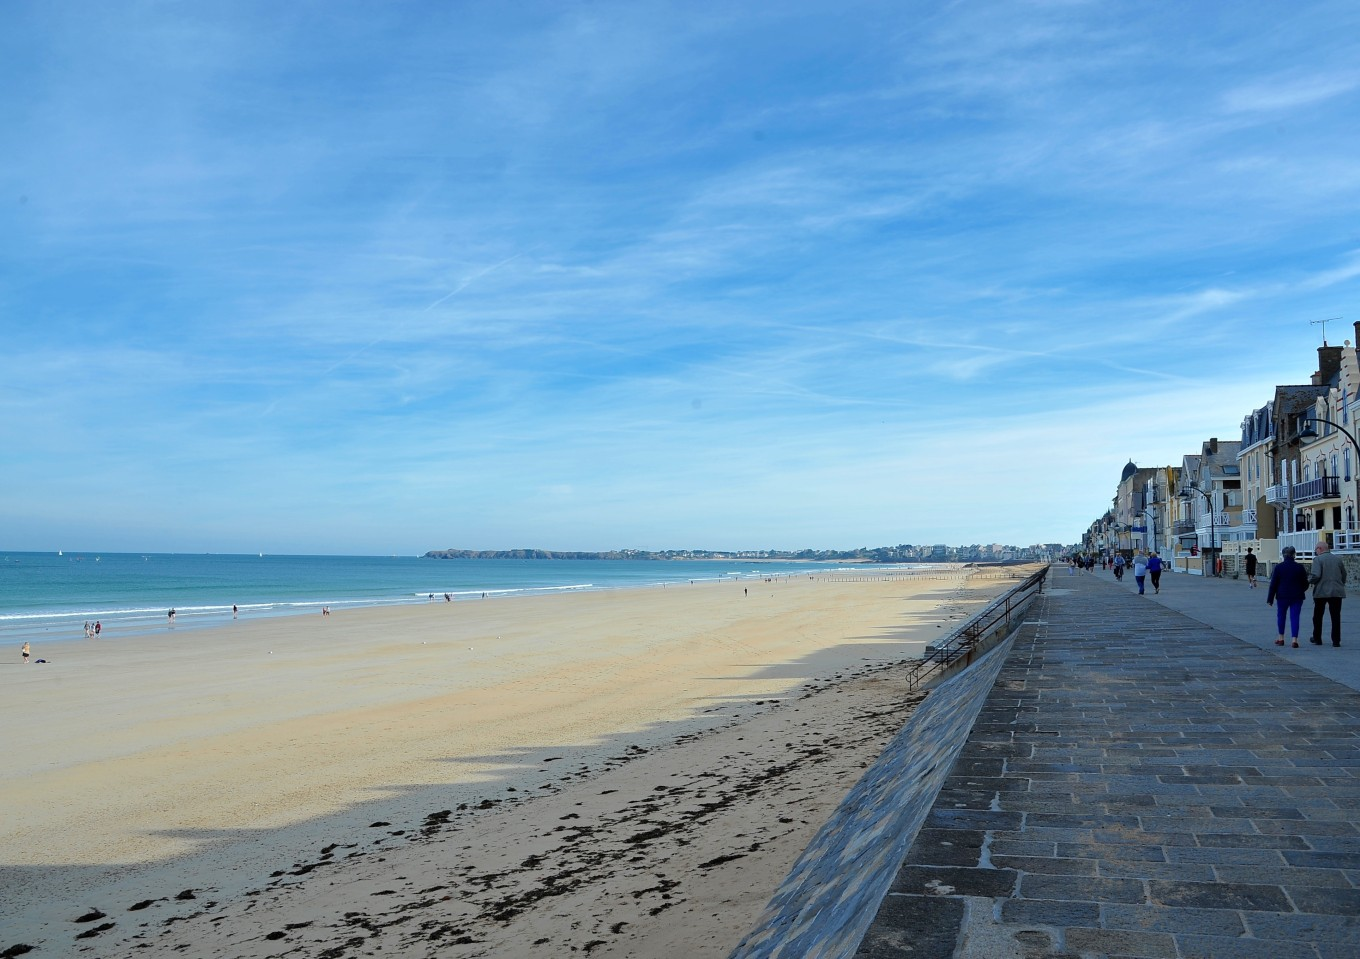 plage de l'Eventail, Saint-Malo, France